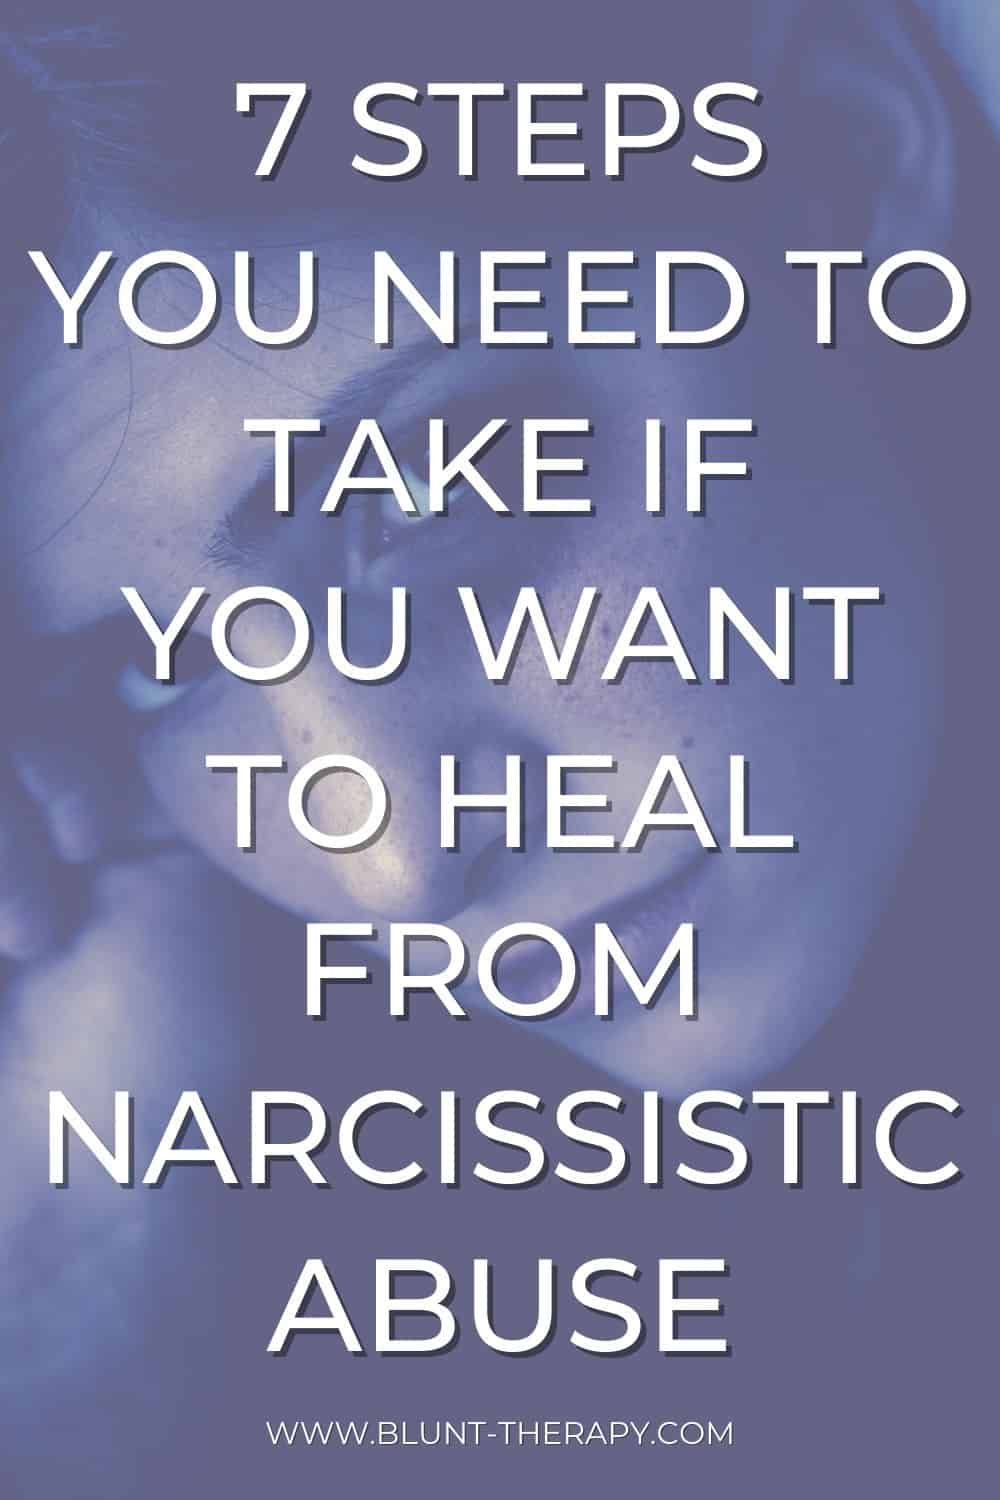 7 Steps You Need To Take If You Want To Heal From Narcissistic Abuse